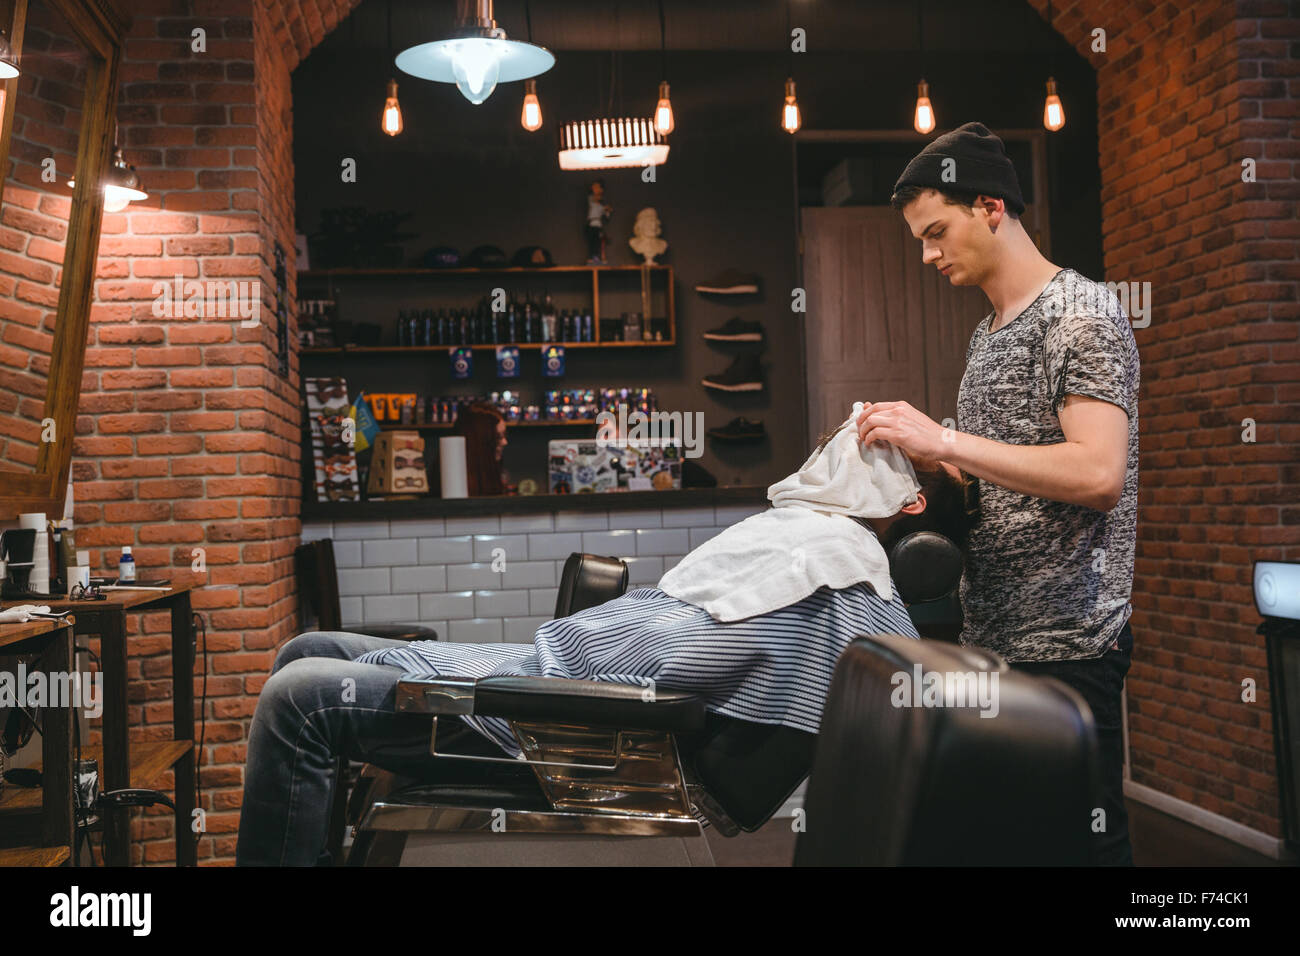 Barber finishing grooming and taking care of client's face in barbershop - Stock Image